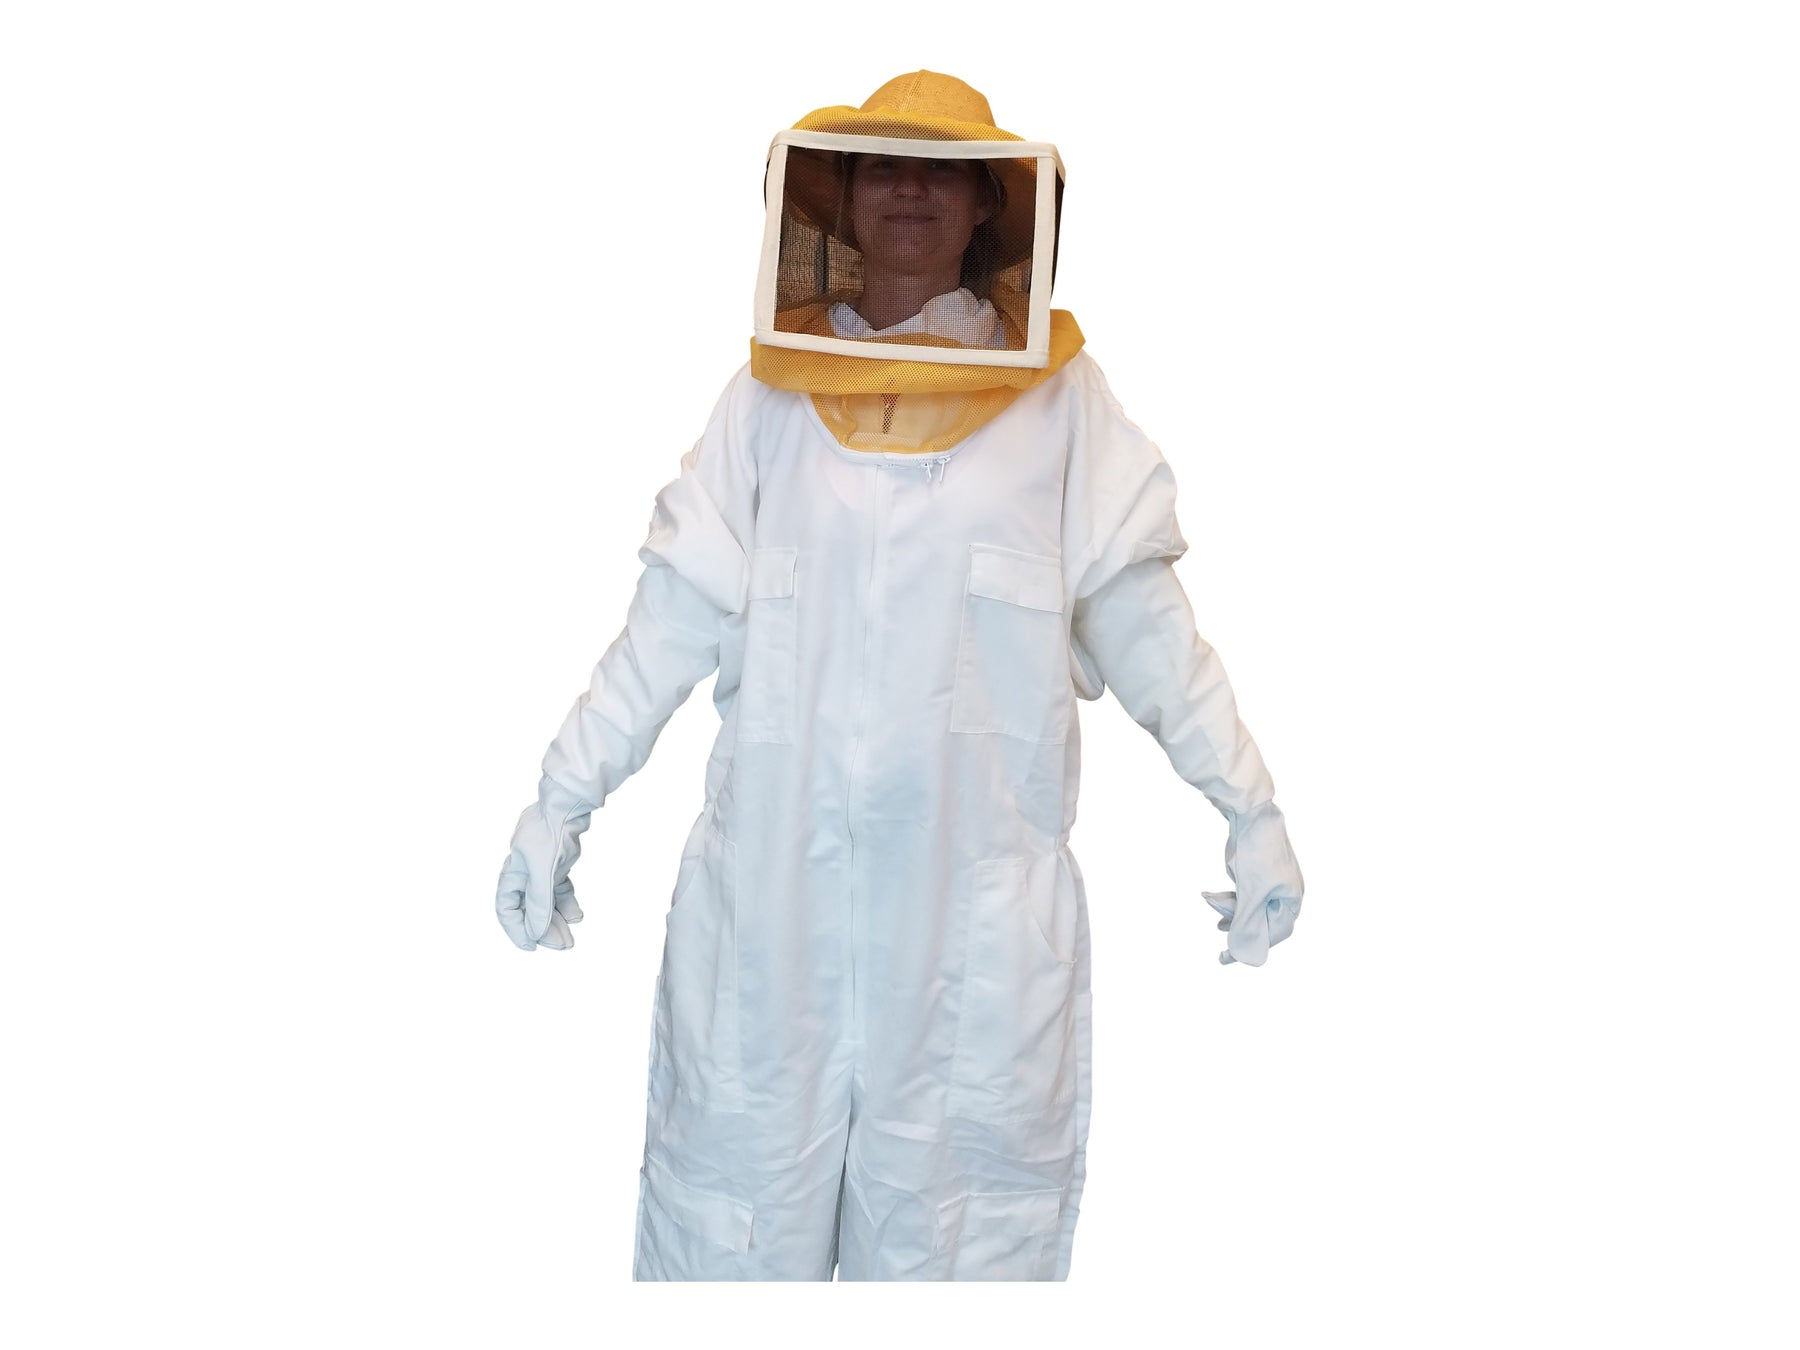 Heavy Duty Bee Suit for Pest Control Use